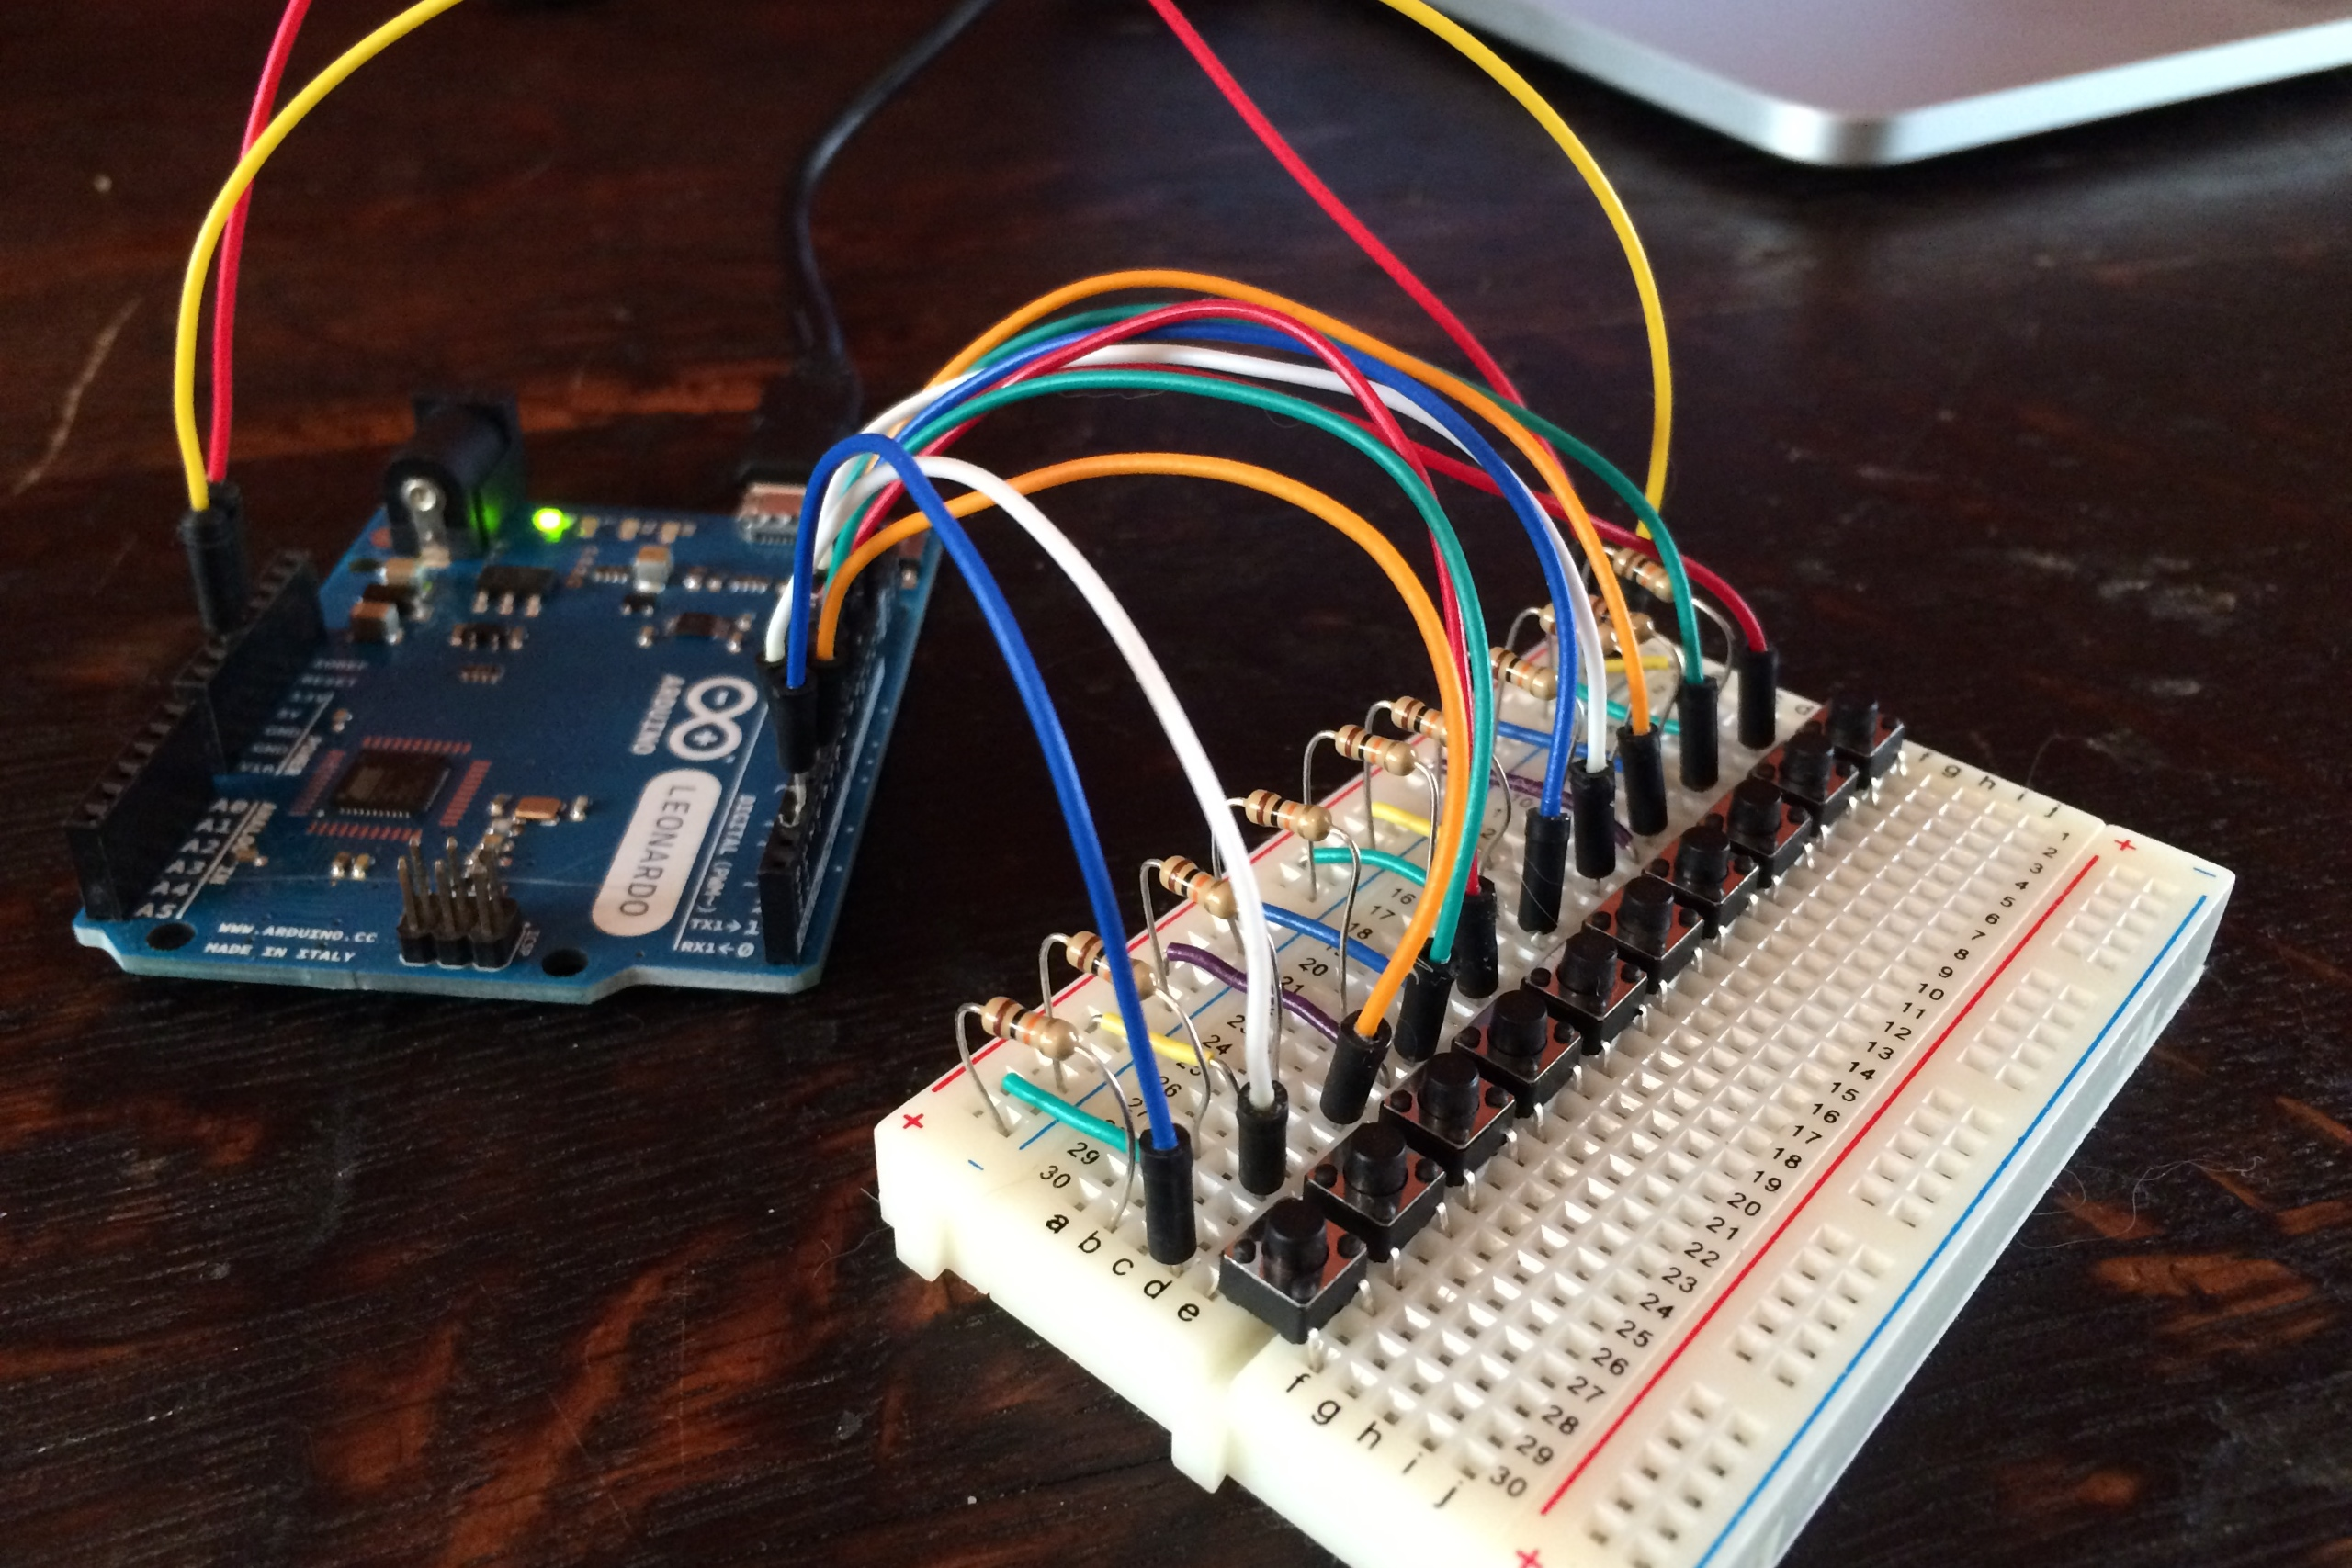 An Arduino Leonardo connected to a breadboard. On the breadboard are 10 buttons, each has a resistor and a wire connected to the arduino. A laptop is in the background.. Picture taken by Steven LeMieux